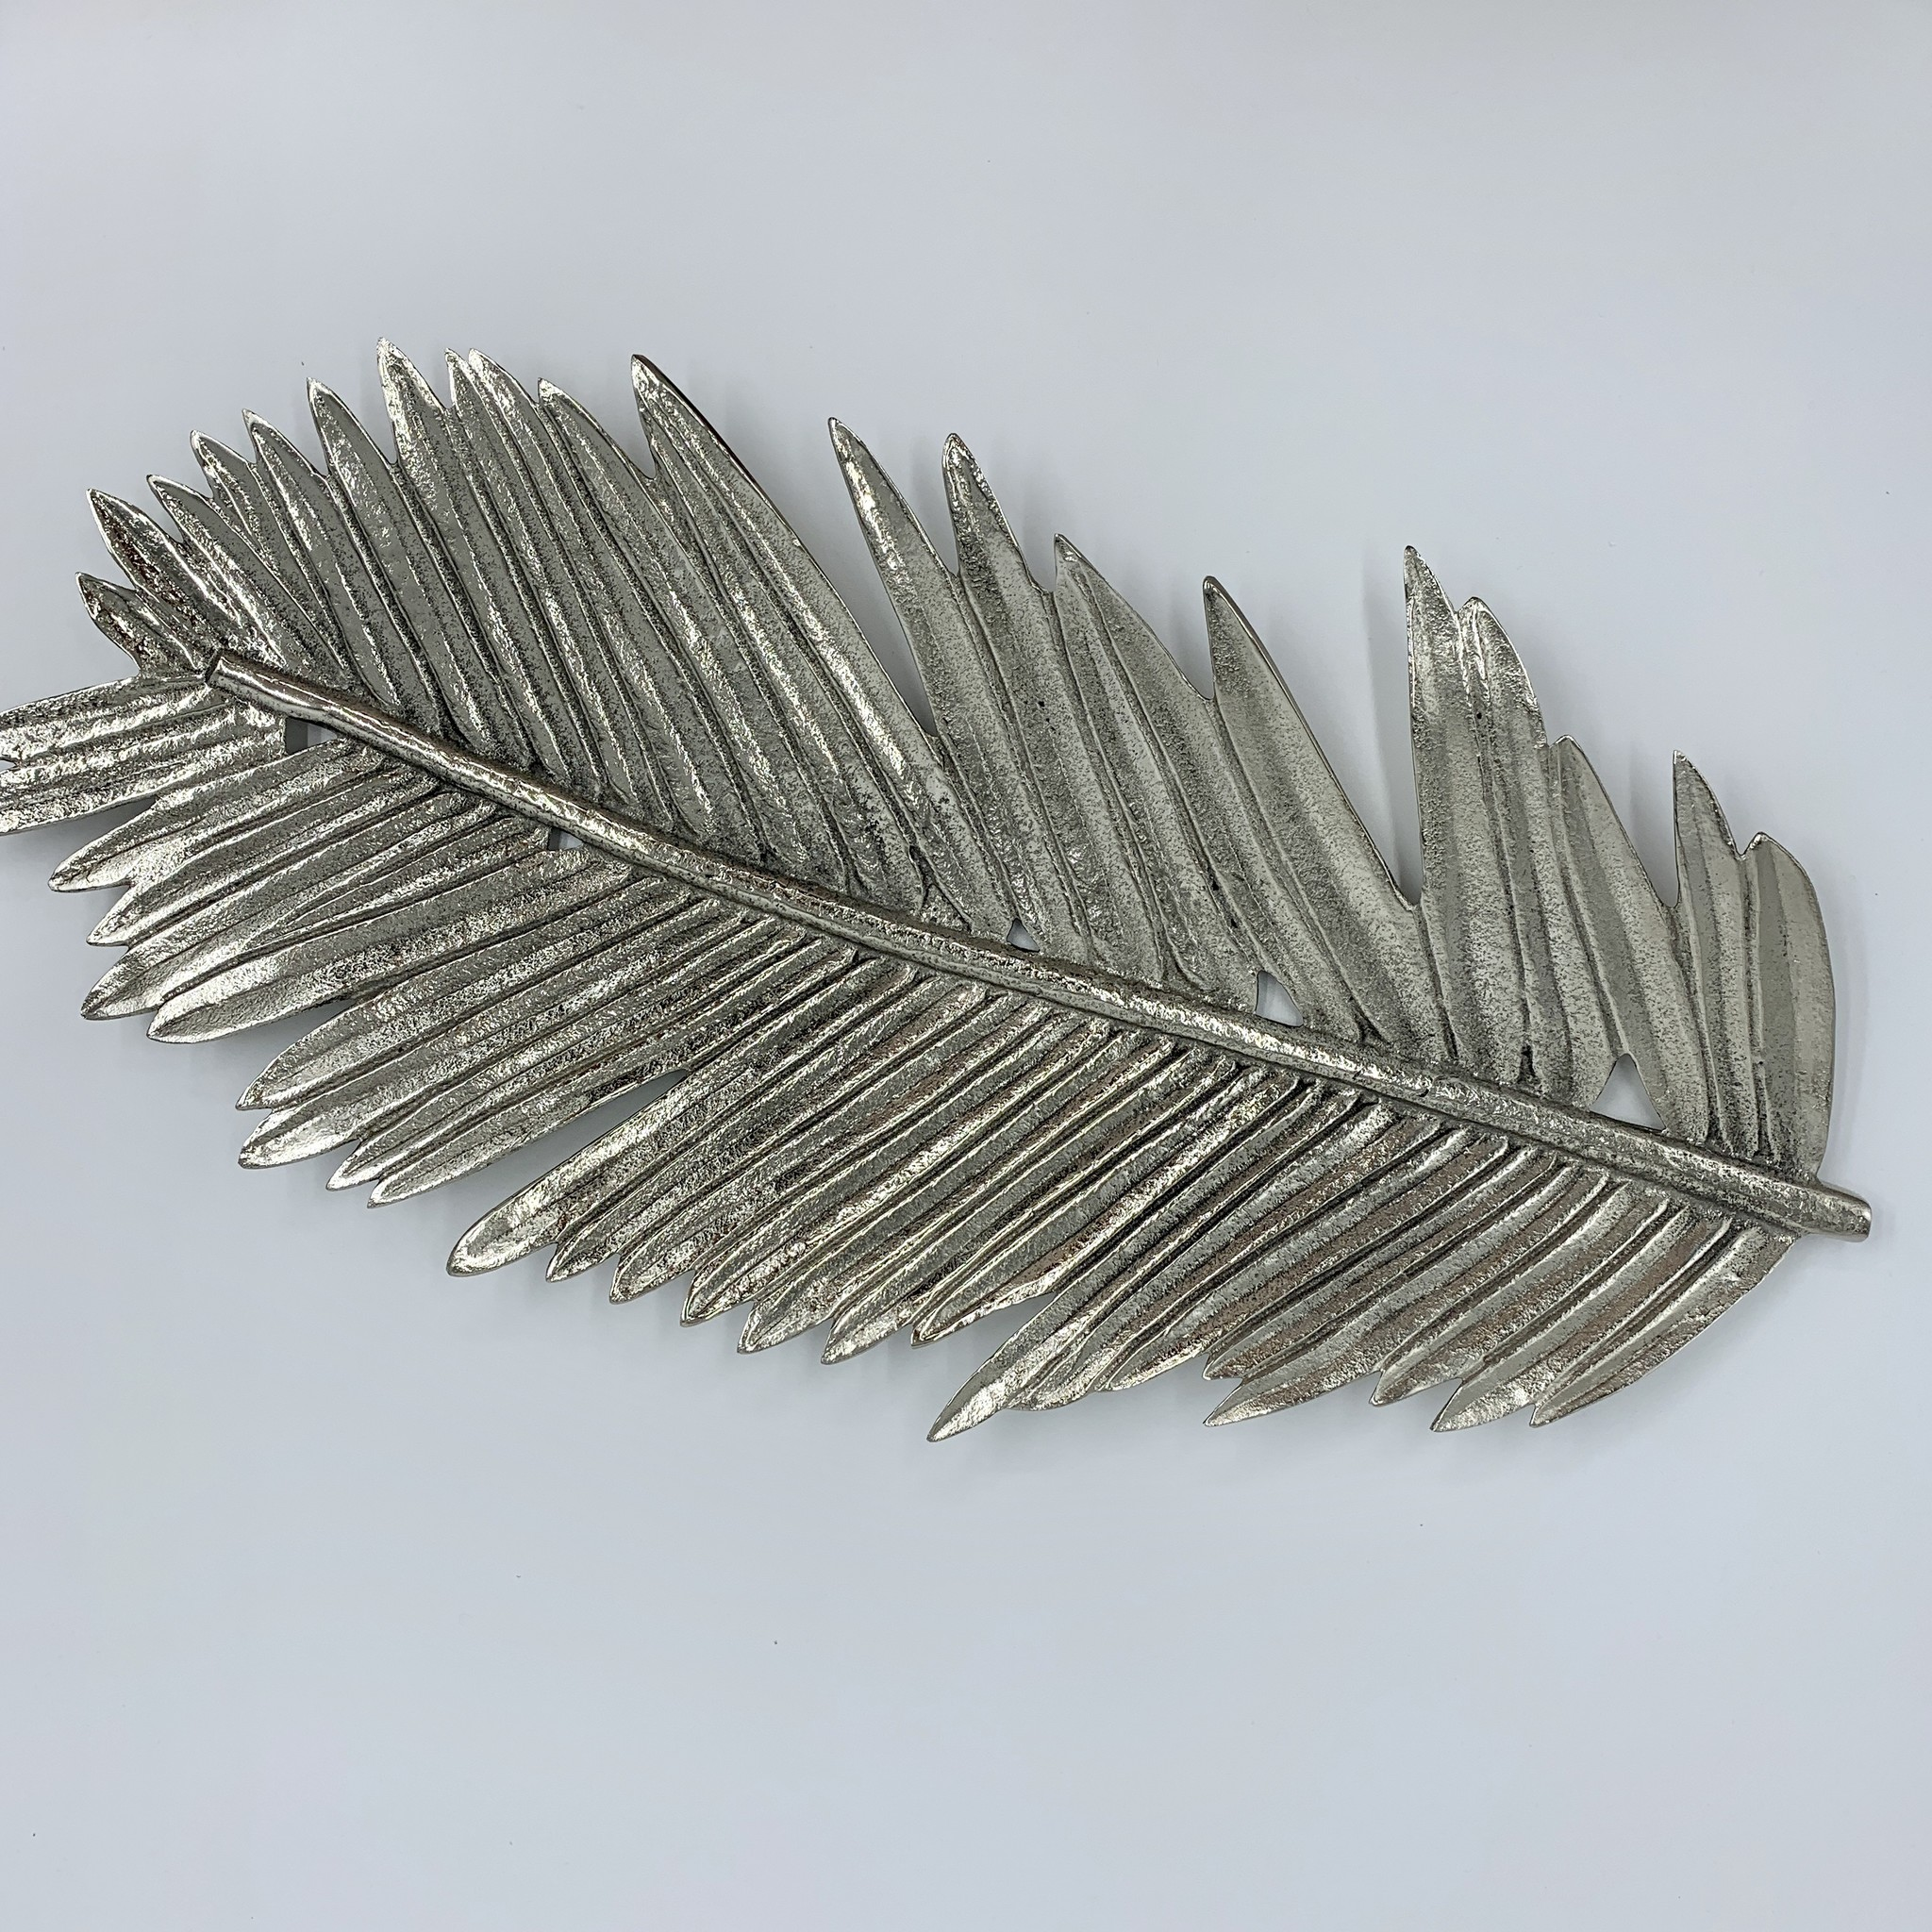 Zodax Silver Palm Tray